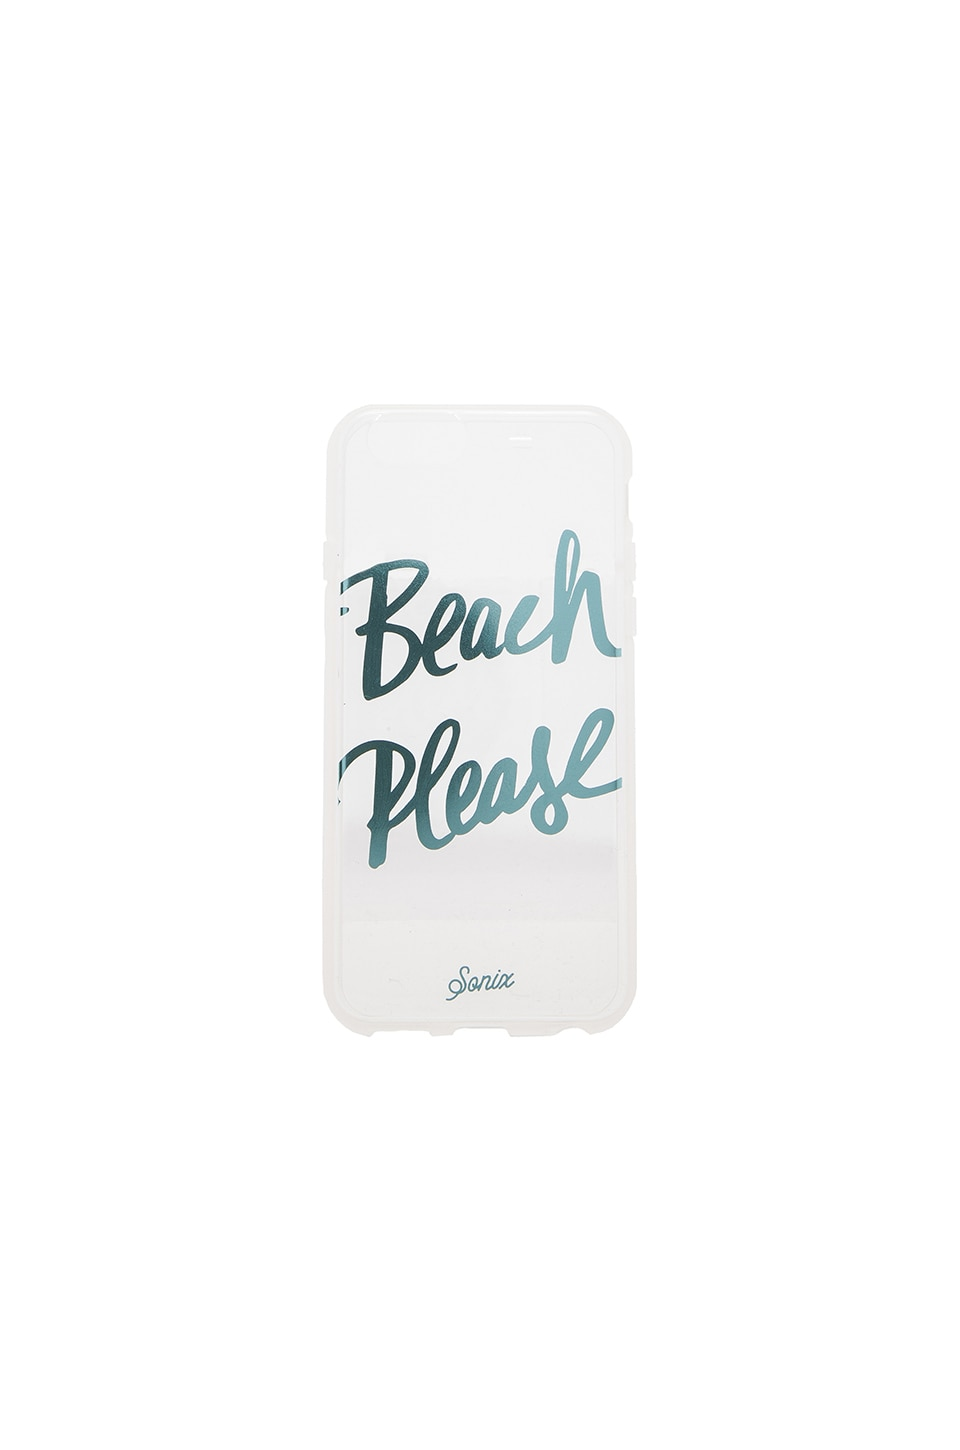 Sonix Clear Beach Please iPhone 6 Case in Clear